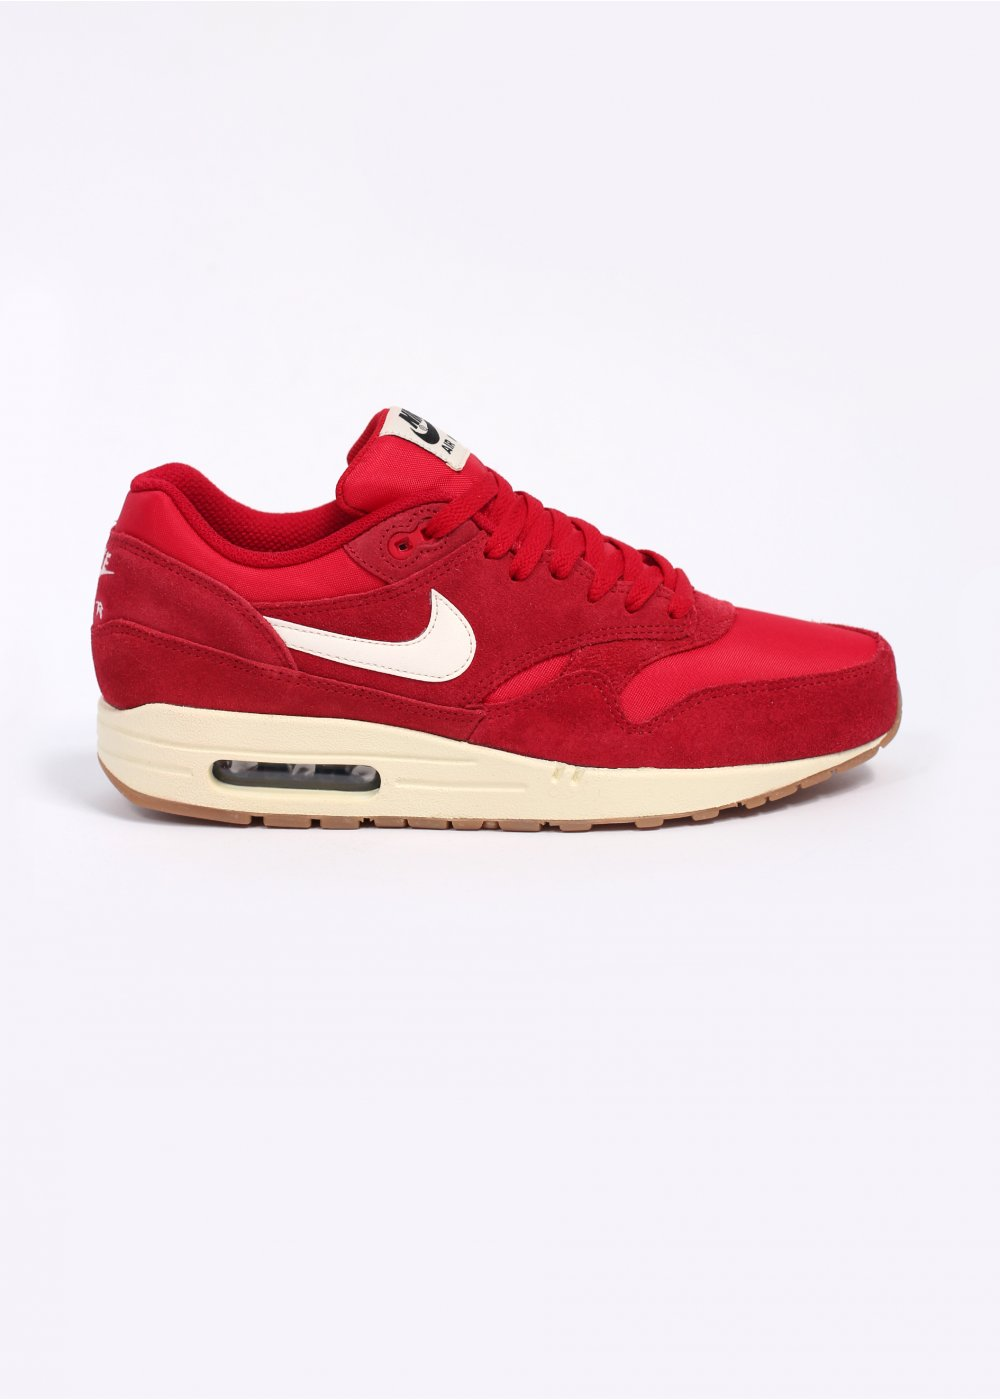 premium selection cfccd bfb2e Air Max 1 Essential Trainers - Gym Red   Sail